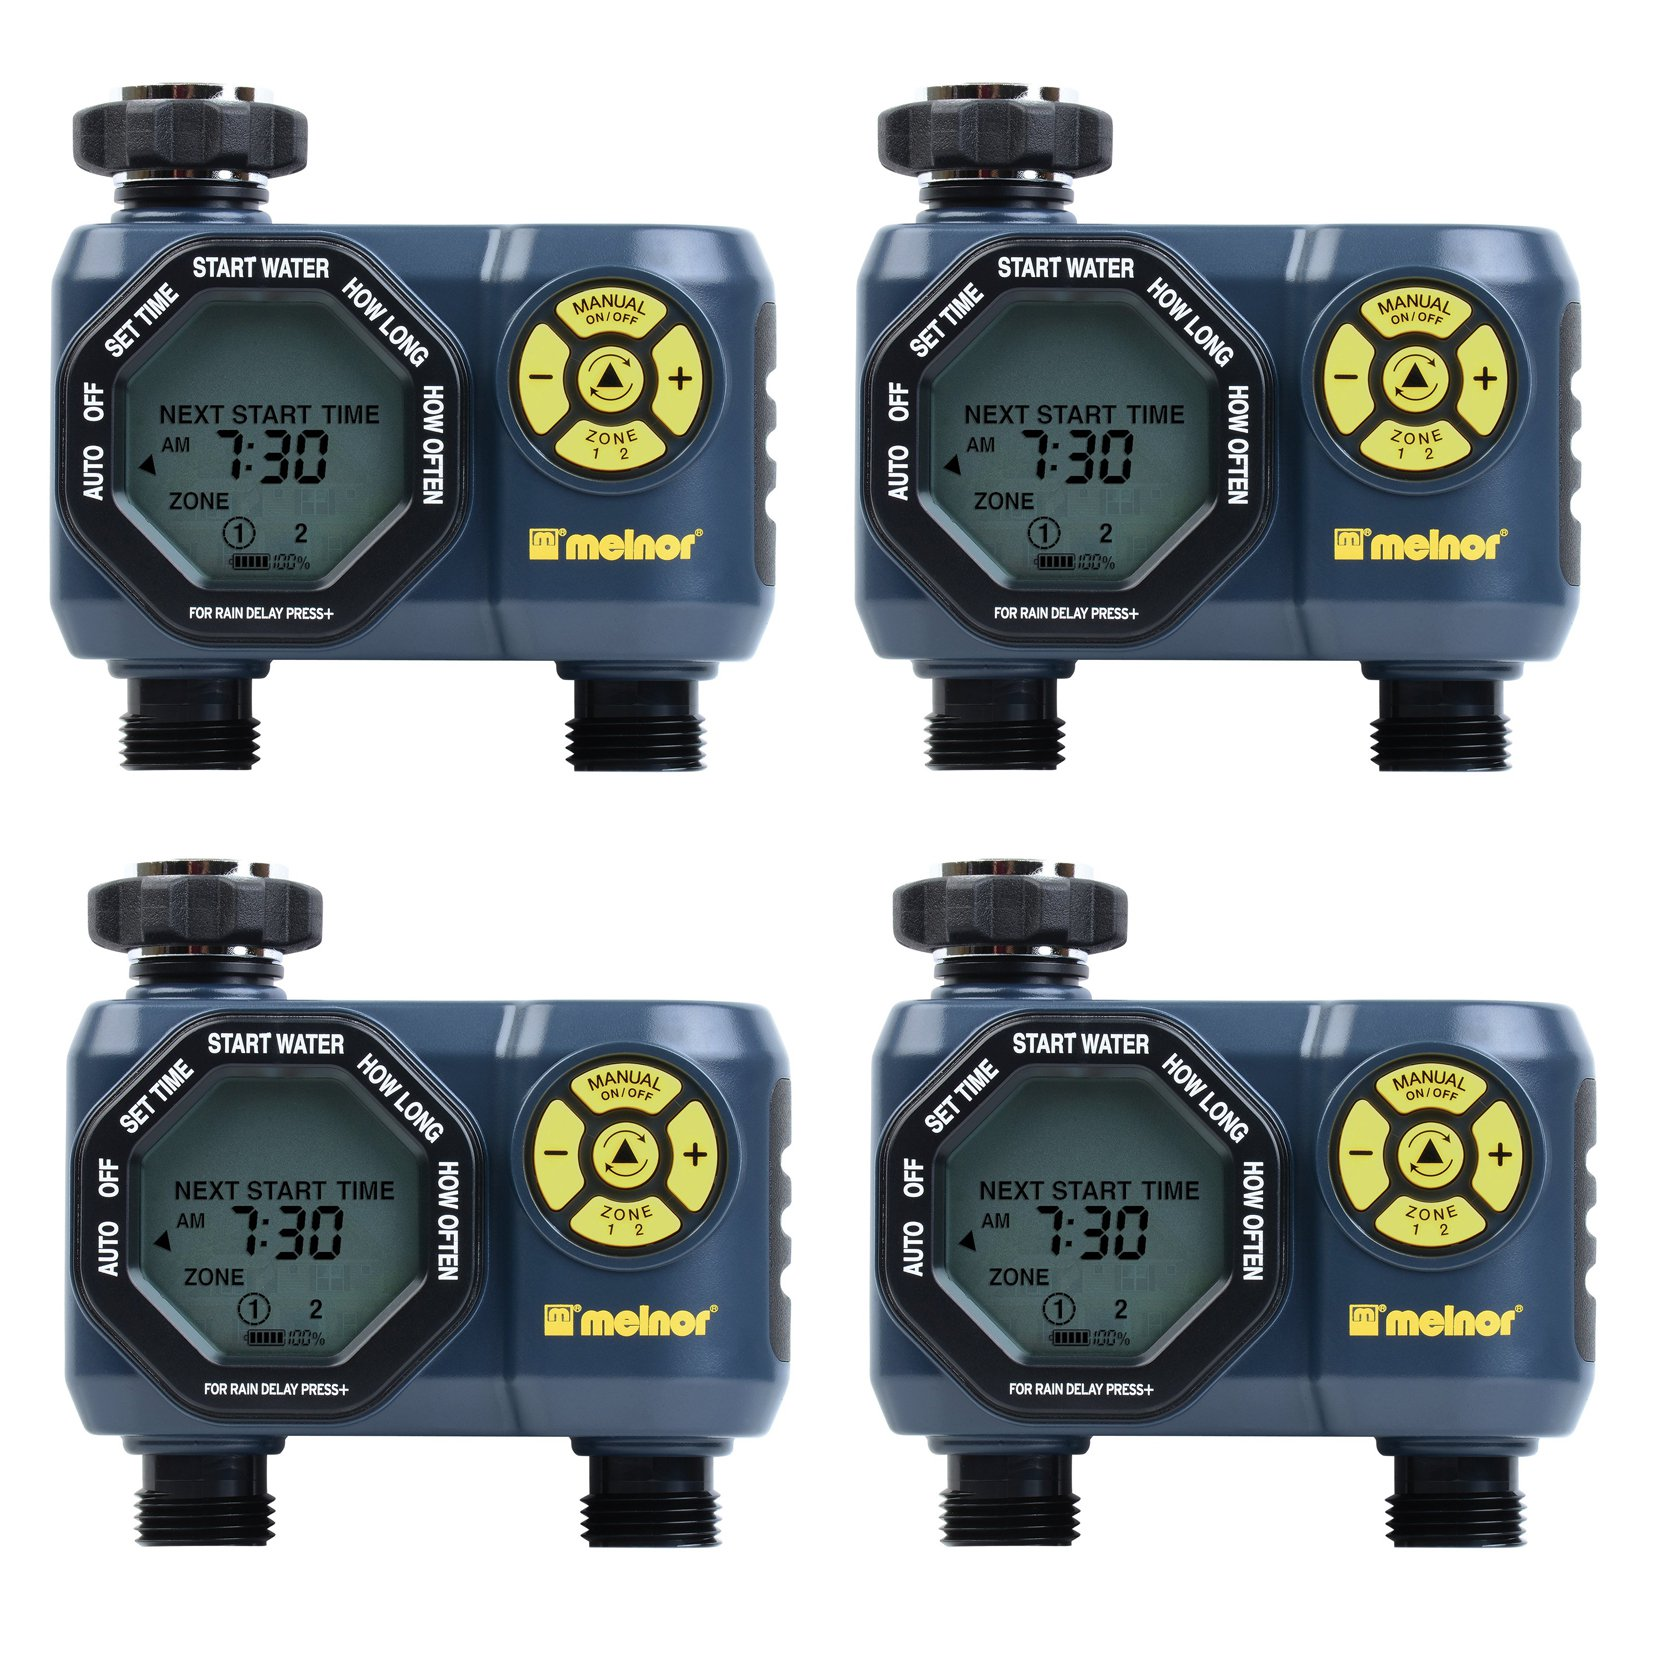 Melnor Digital 2 Zone Programmable Water Timer and Controller for Garden (4Pack) by Melnor